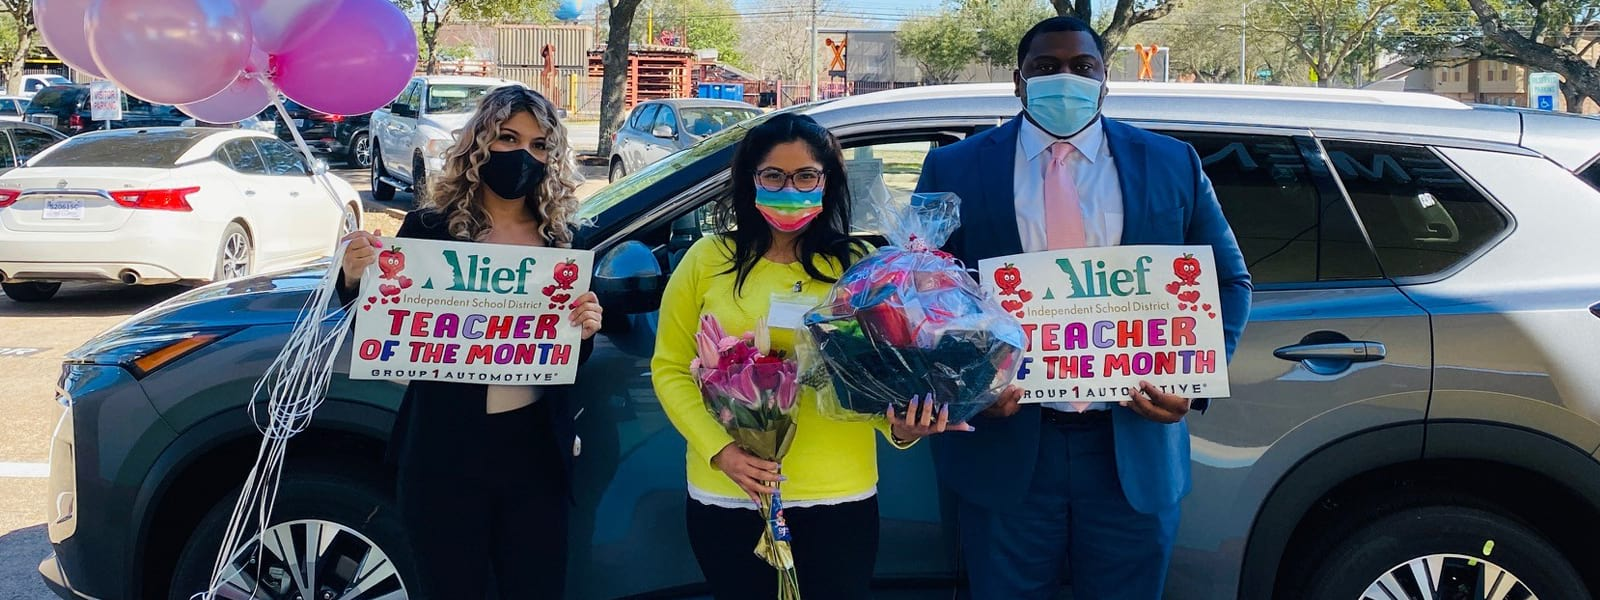 Alief ISD Teacher Honored by Sterling McCall VIP Services and Sterling McCall Nissan